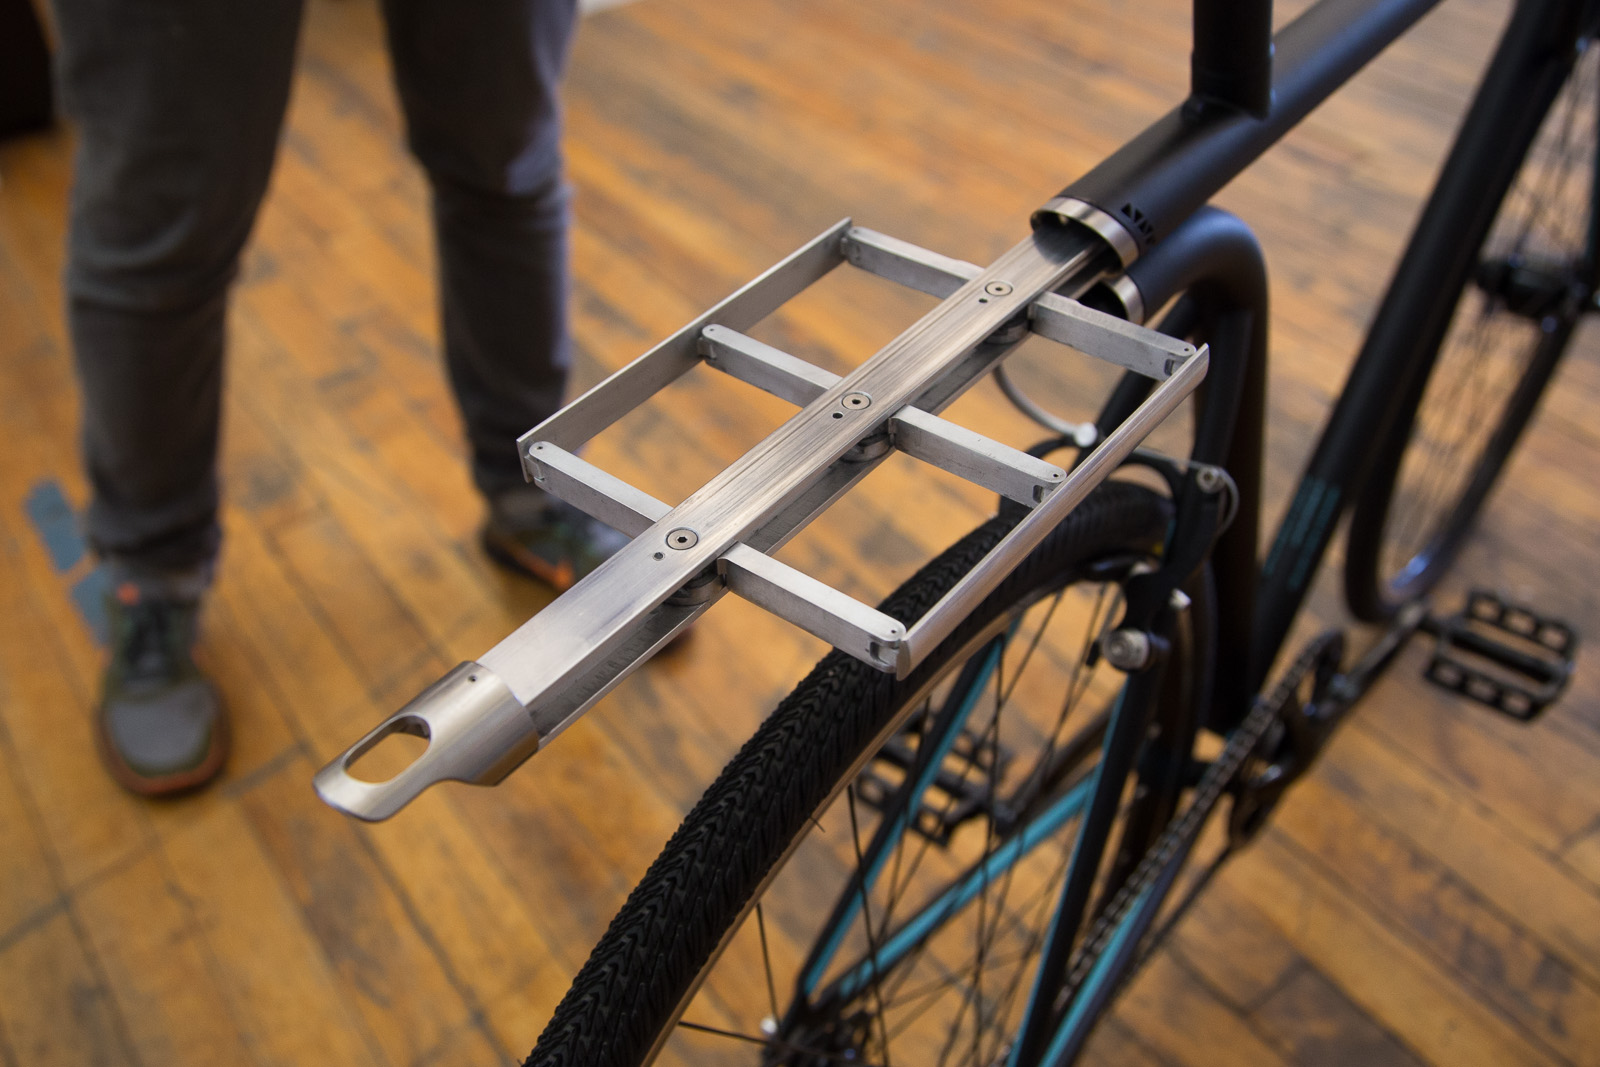 A retractable rack pops back into the bike tube with the push of a button.